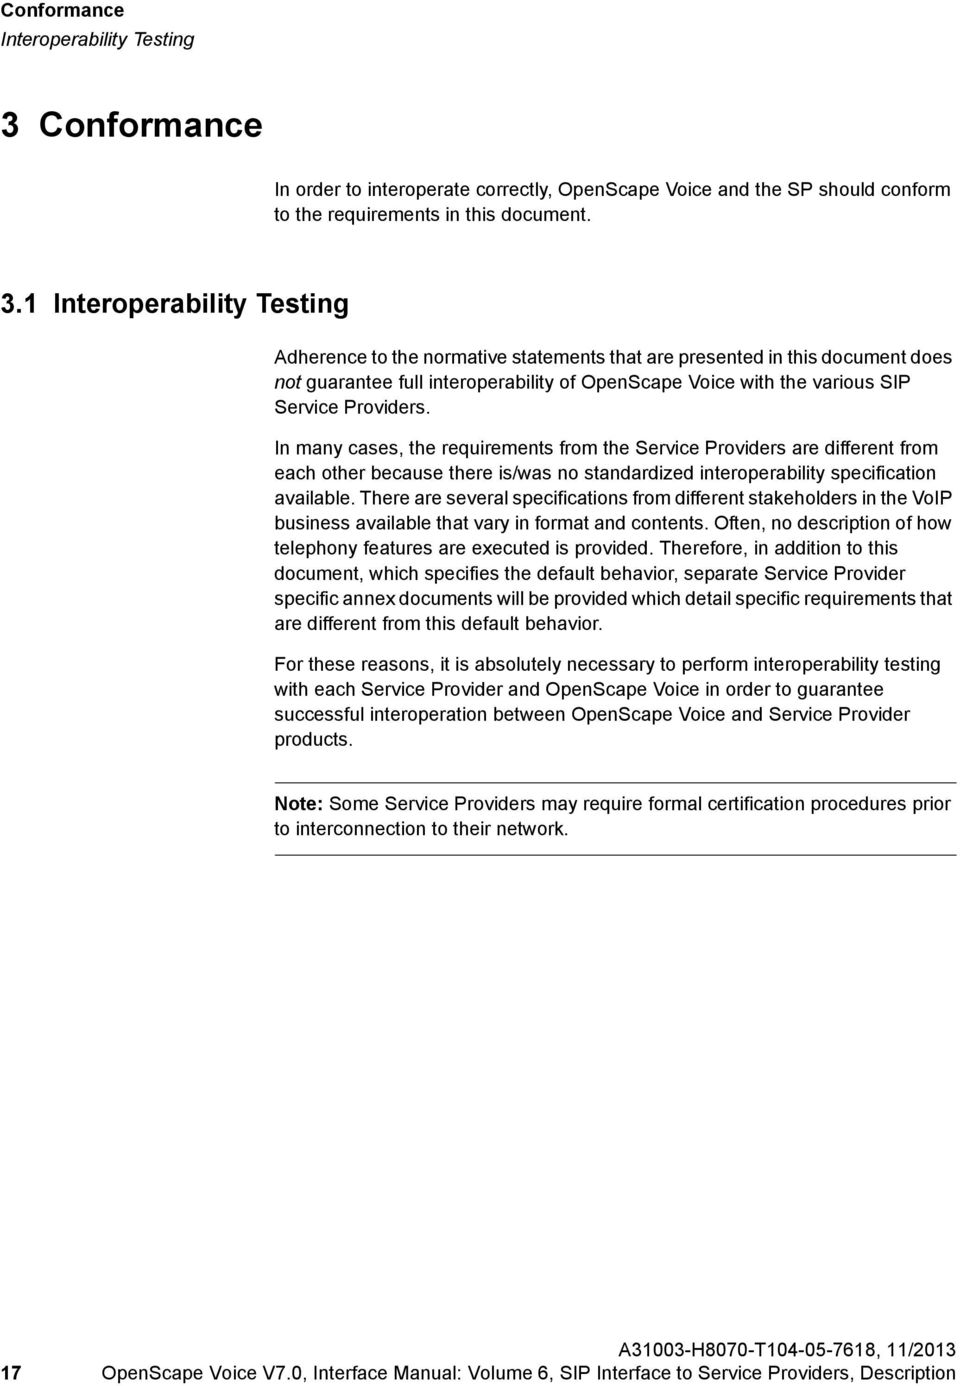 1 Interoperability Testing Adherence to the normative statements that are presented in this document does not guarantee full interoperability of OpenScape Voice with the various SIP Service Providers.